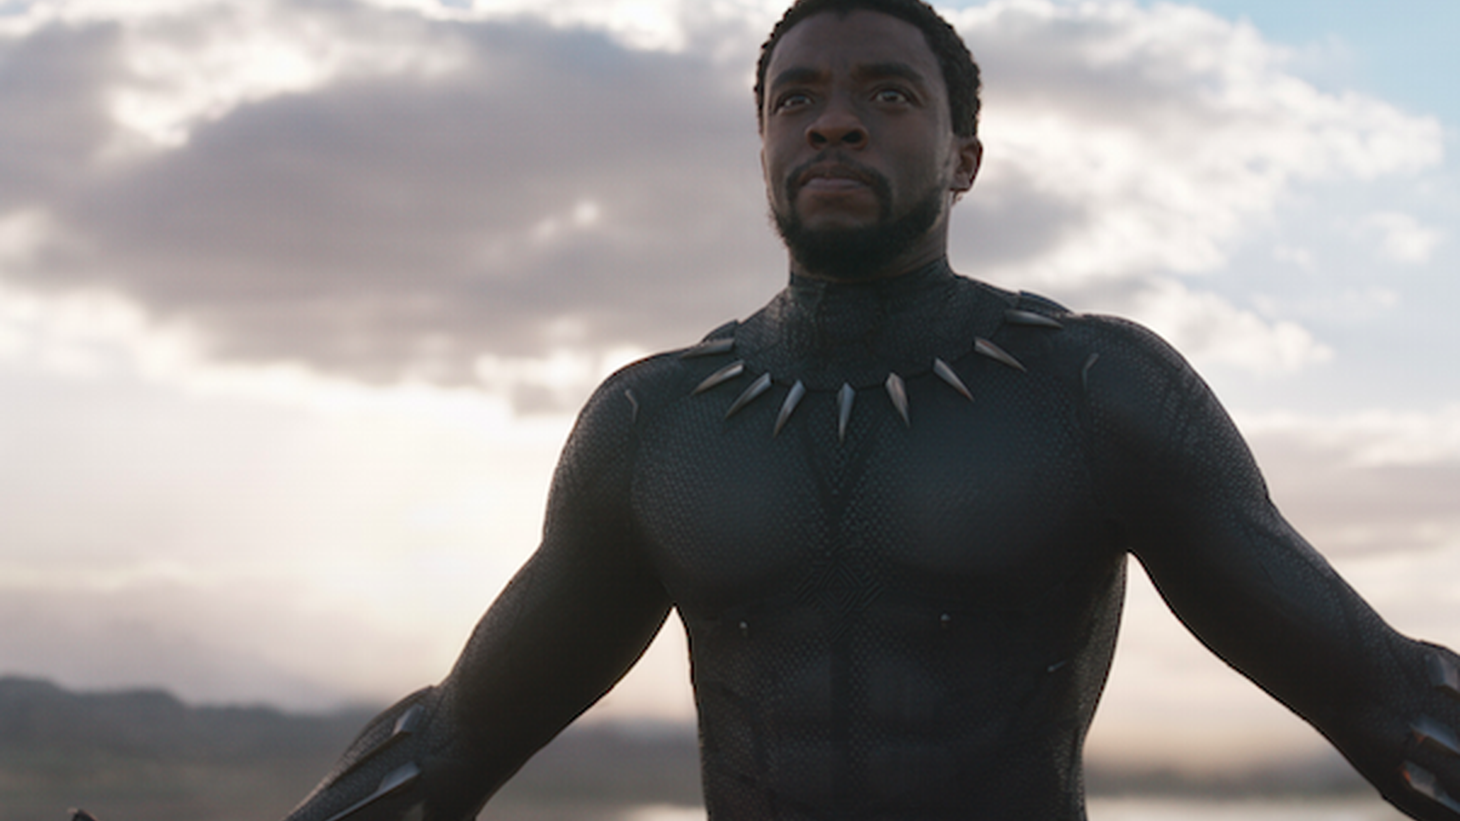 The movie opens Friday. It's the first big budget superhero movie with a black director, predominantly black cast, and a storyline seen through a black lens. Critics say it marks a cultural milestone.